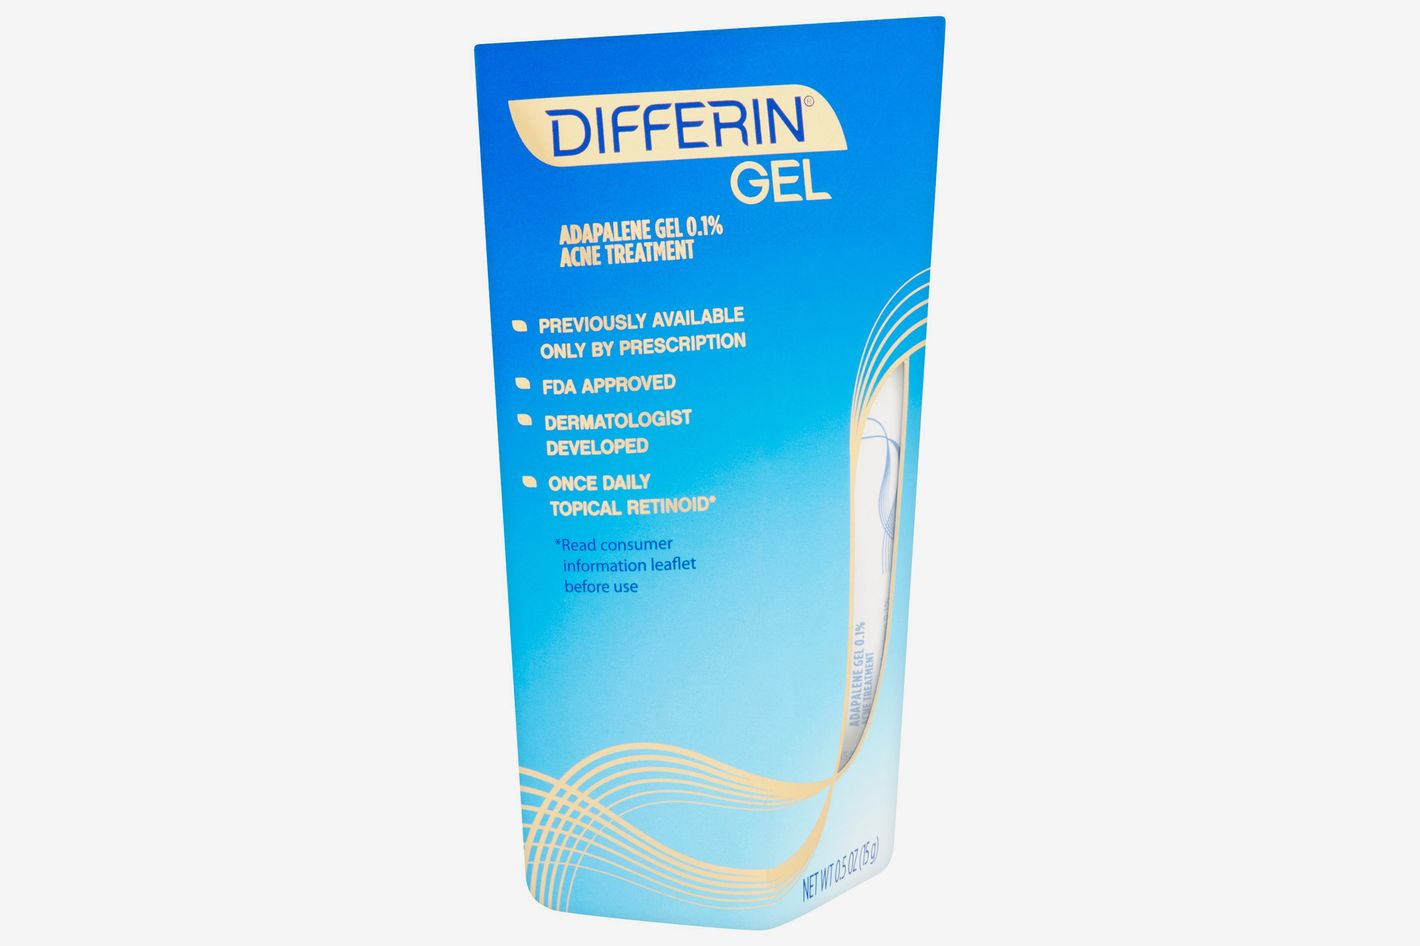 Differin Gel Acne Treatment